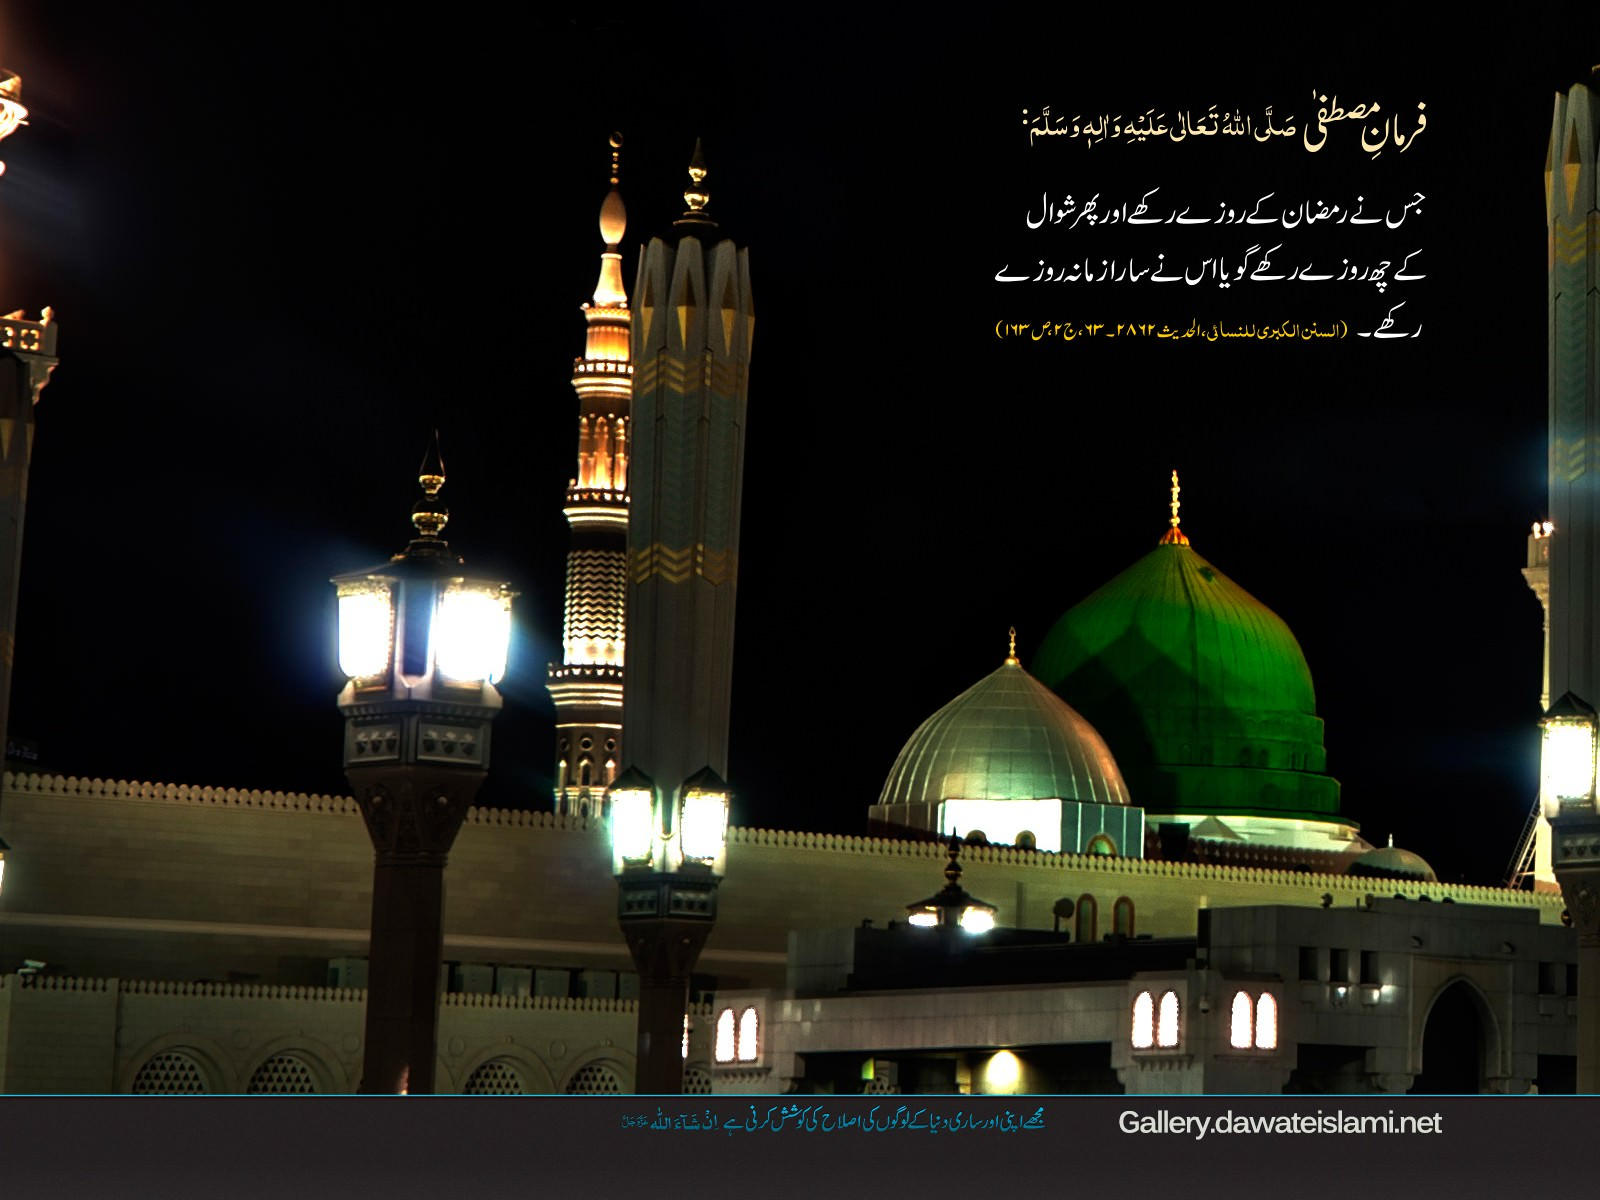 shawwal kay 6 rozay- Wallpaper